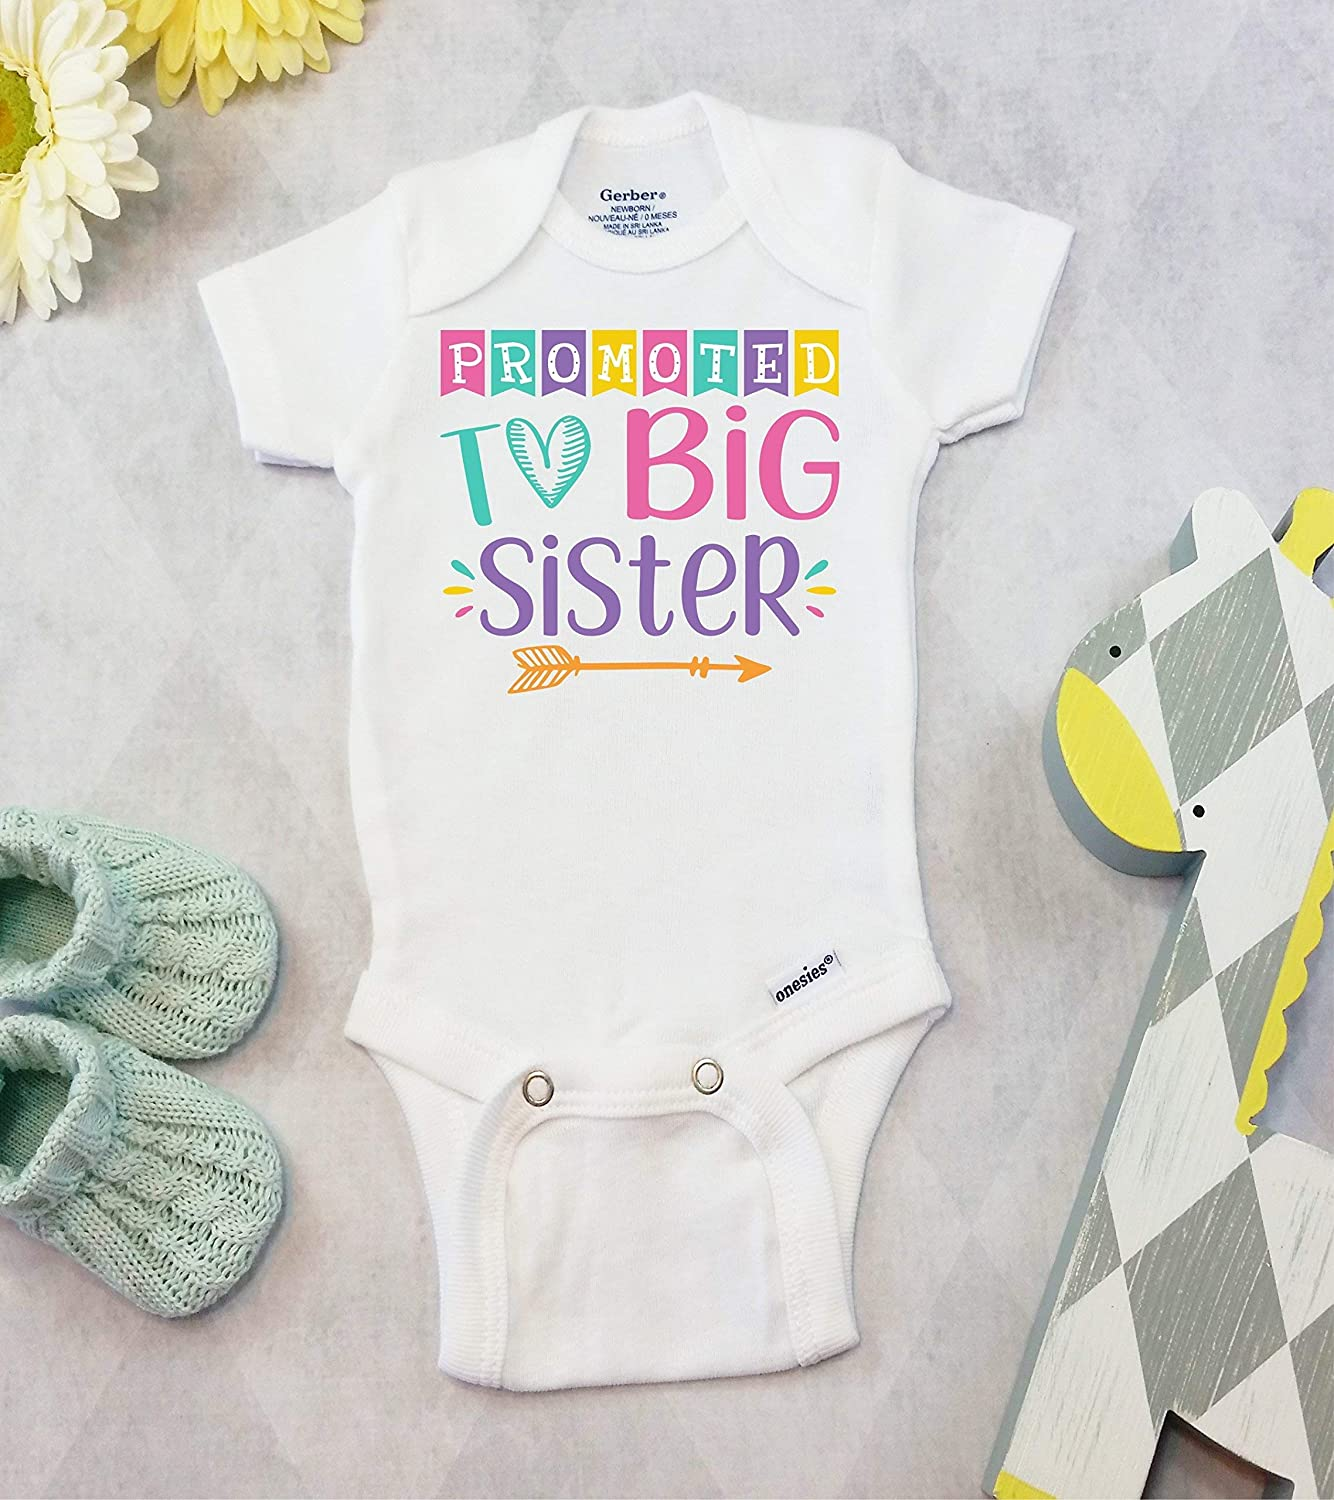 475ac194e Amazon.com: Promoted to Big Sister Sibling Pregnancy Announcement Bodysuit  or T-Shirt: Handmade